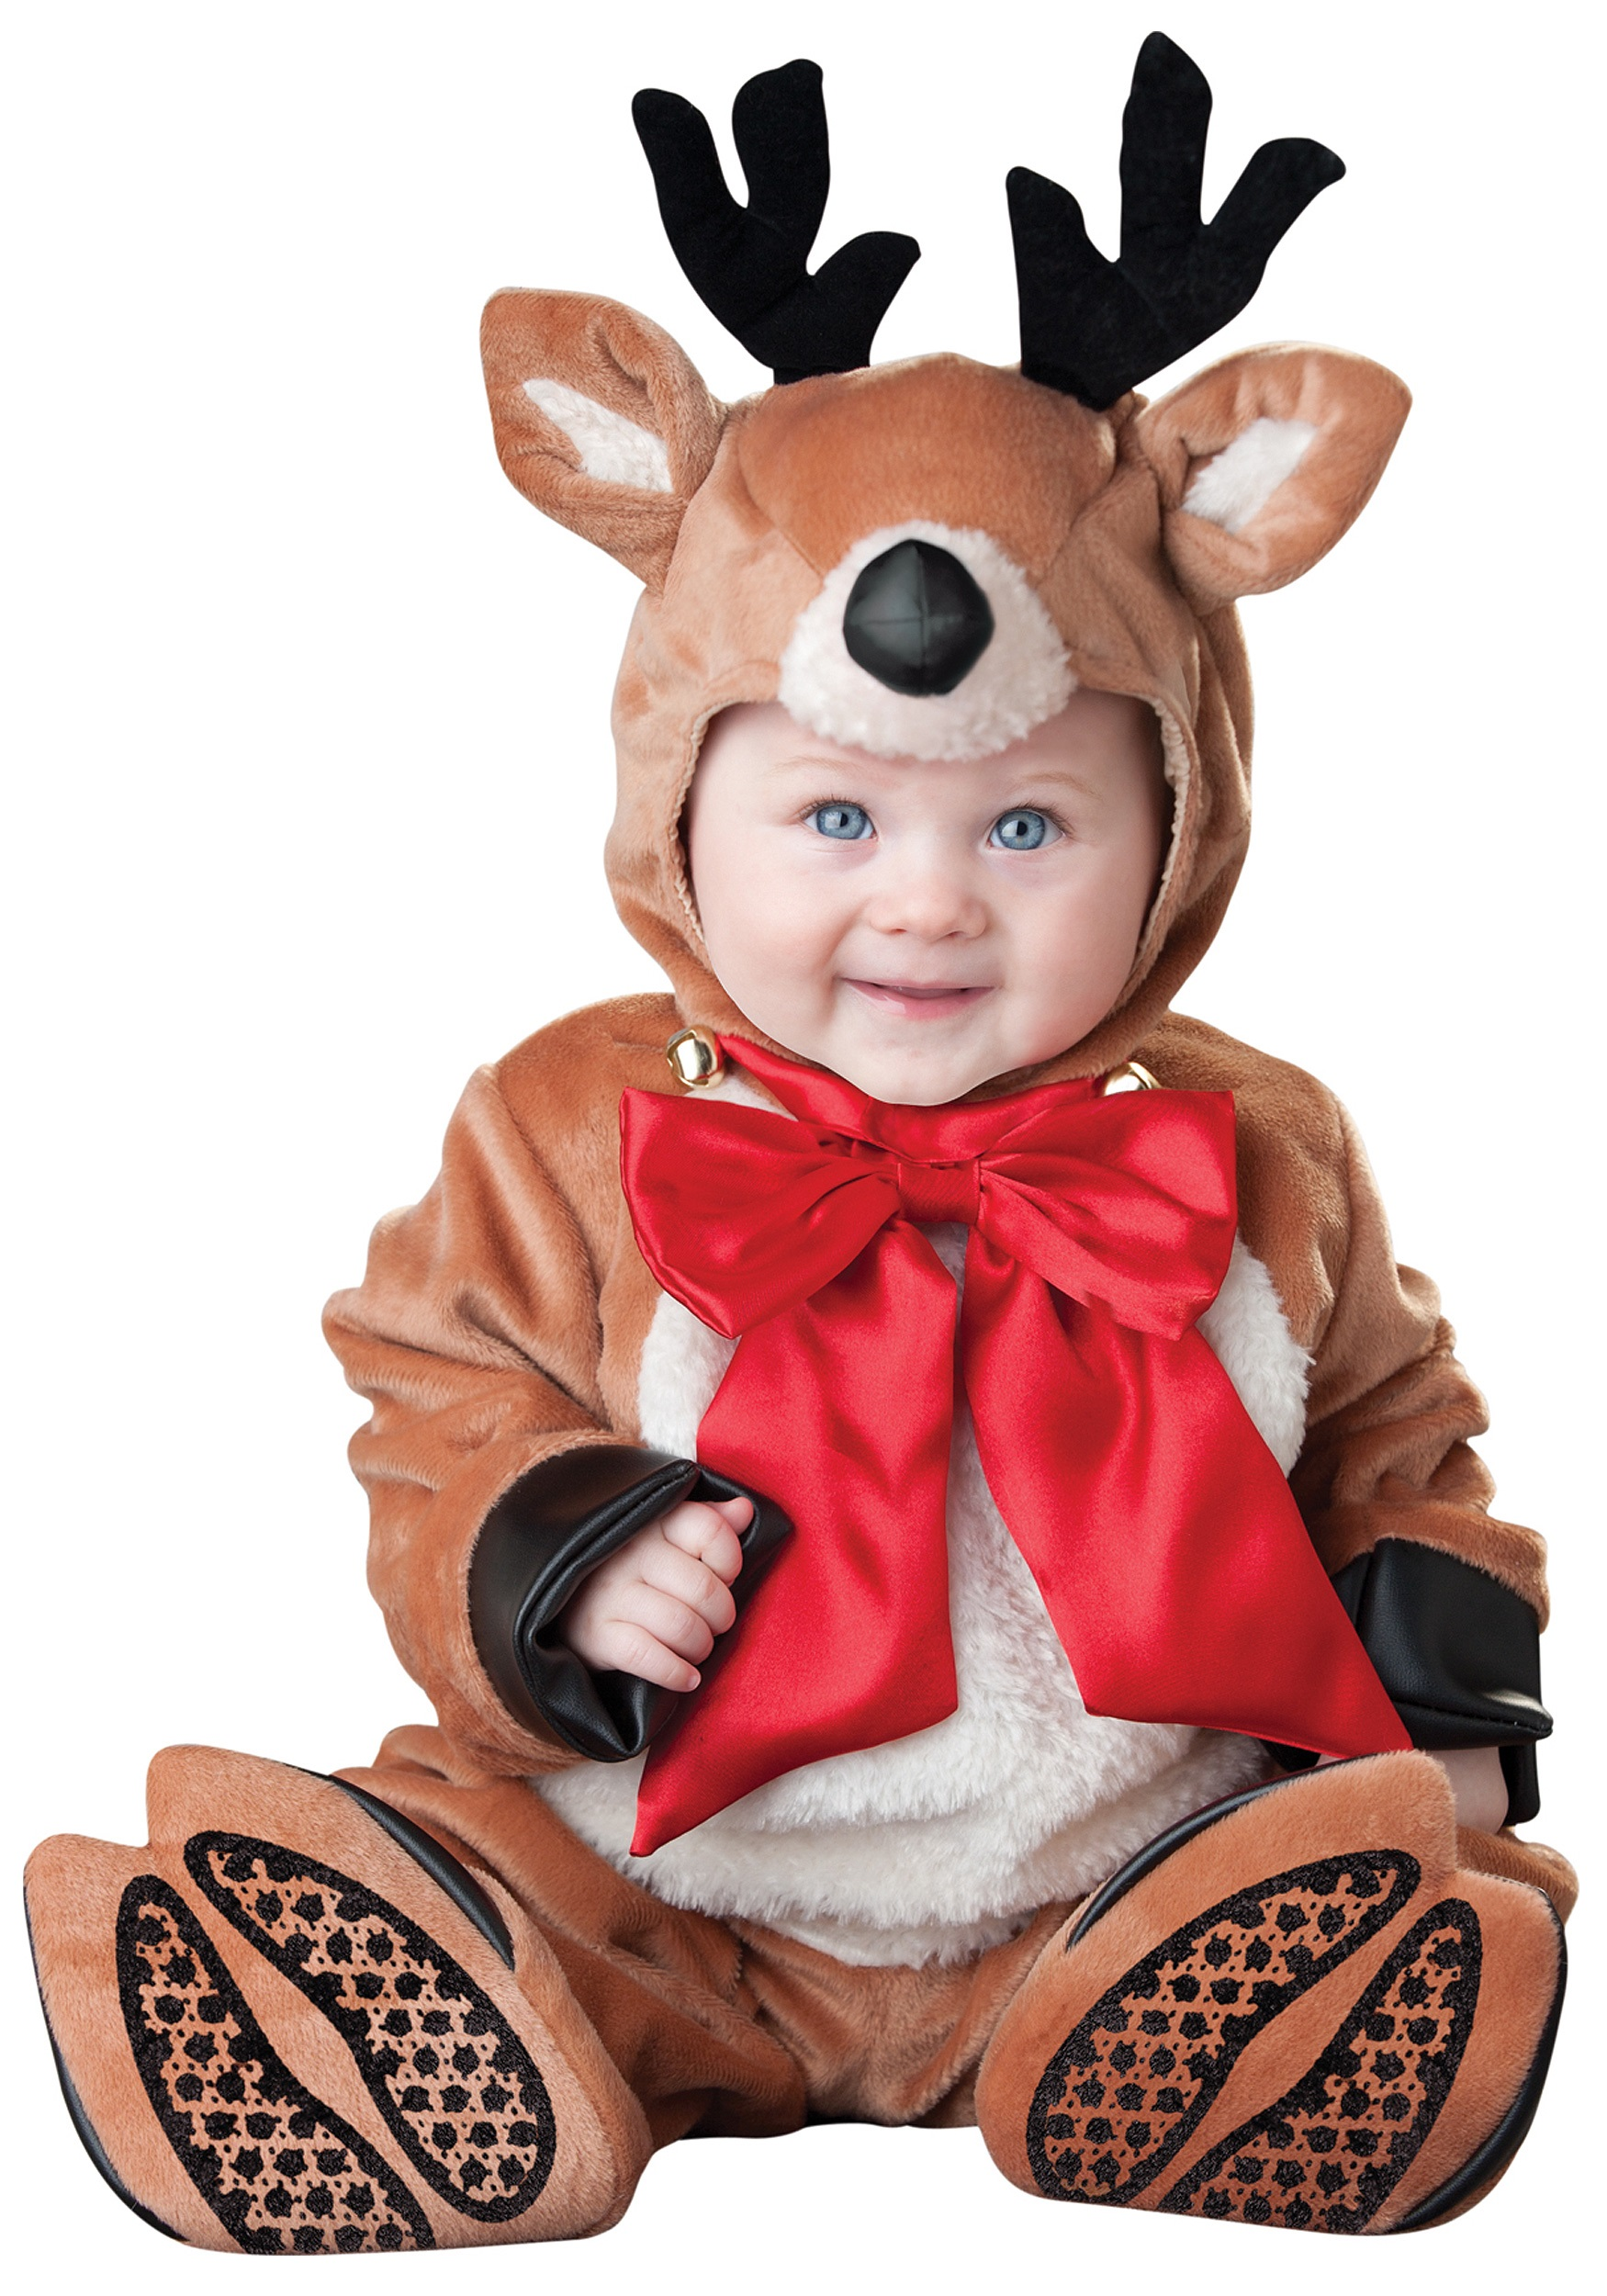 New baby boys girls toddler animal xmas party fancy dress costume new baby boys girls toddler animal xmas party fancy dress costume jumpsuit solutioingenieria Gallery